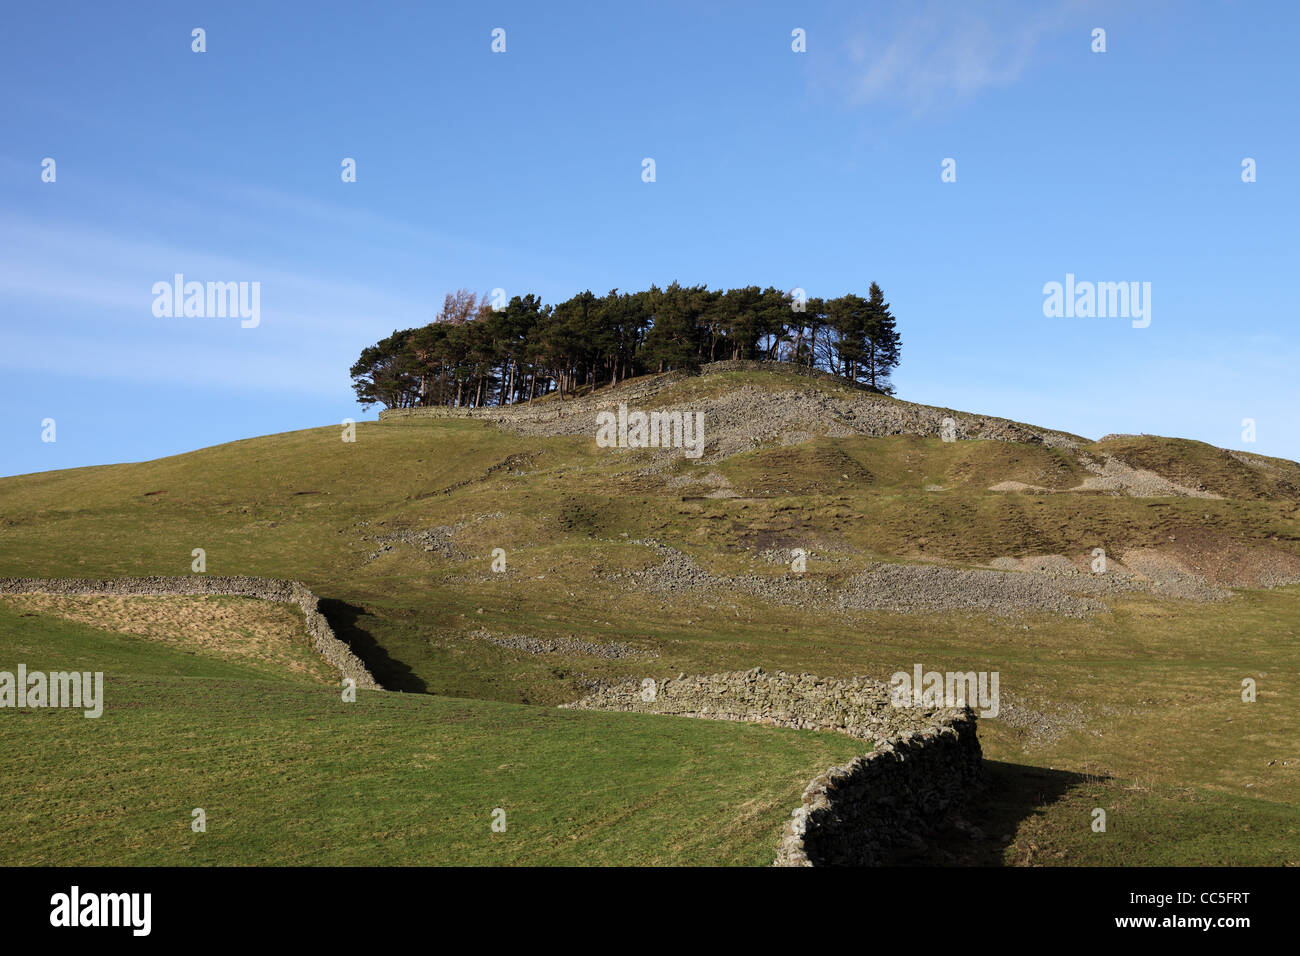 The Ancient Hilltop Tumulus of Kirkcarrion in Lunedale Teesdale County Durham UK - Stock Image